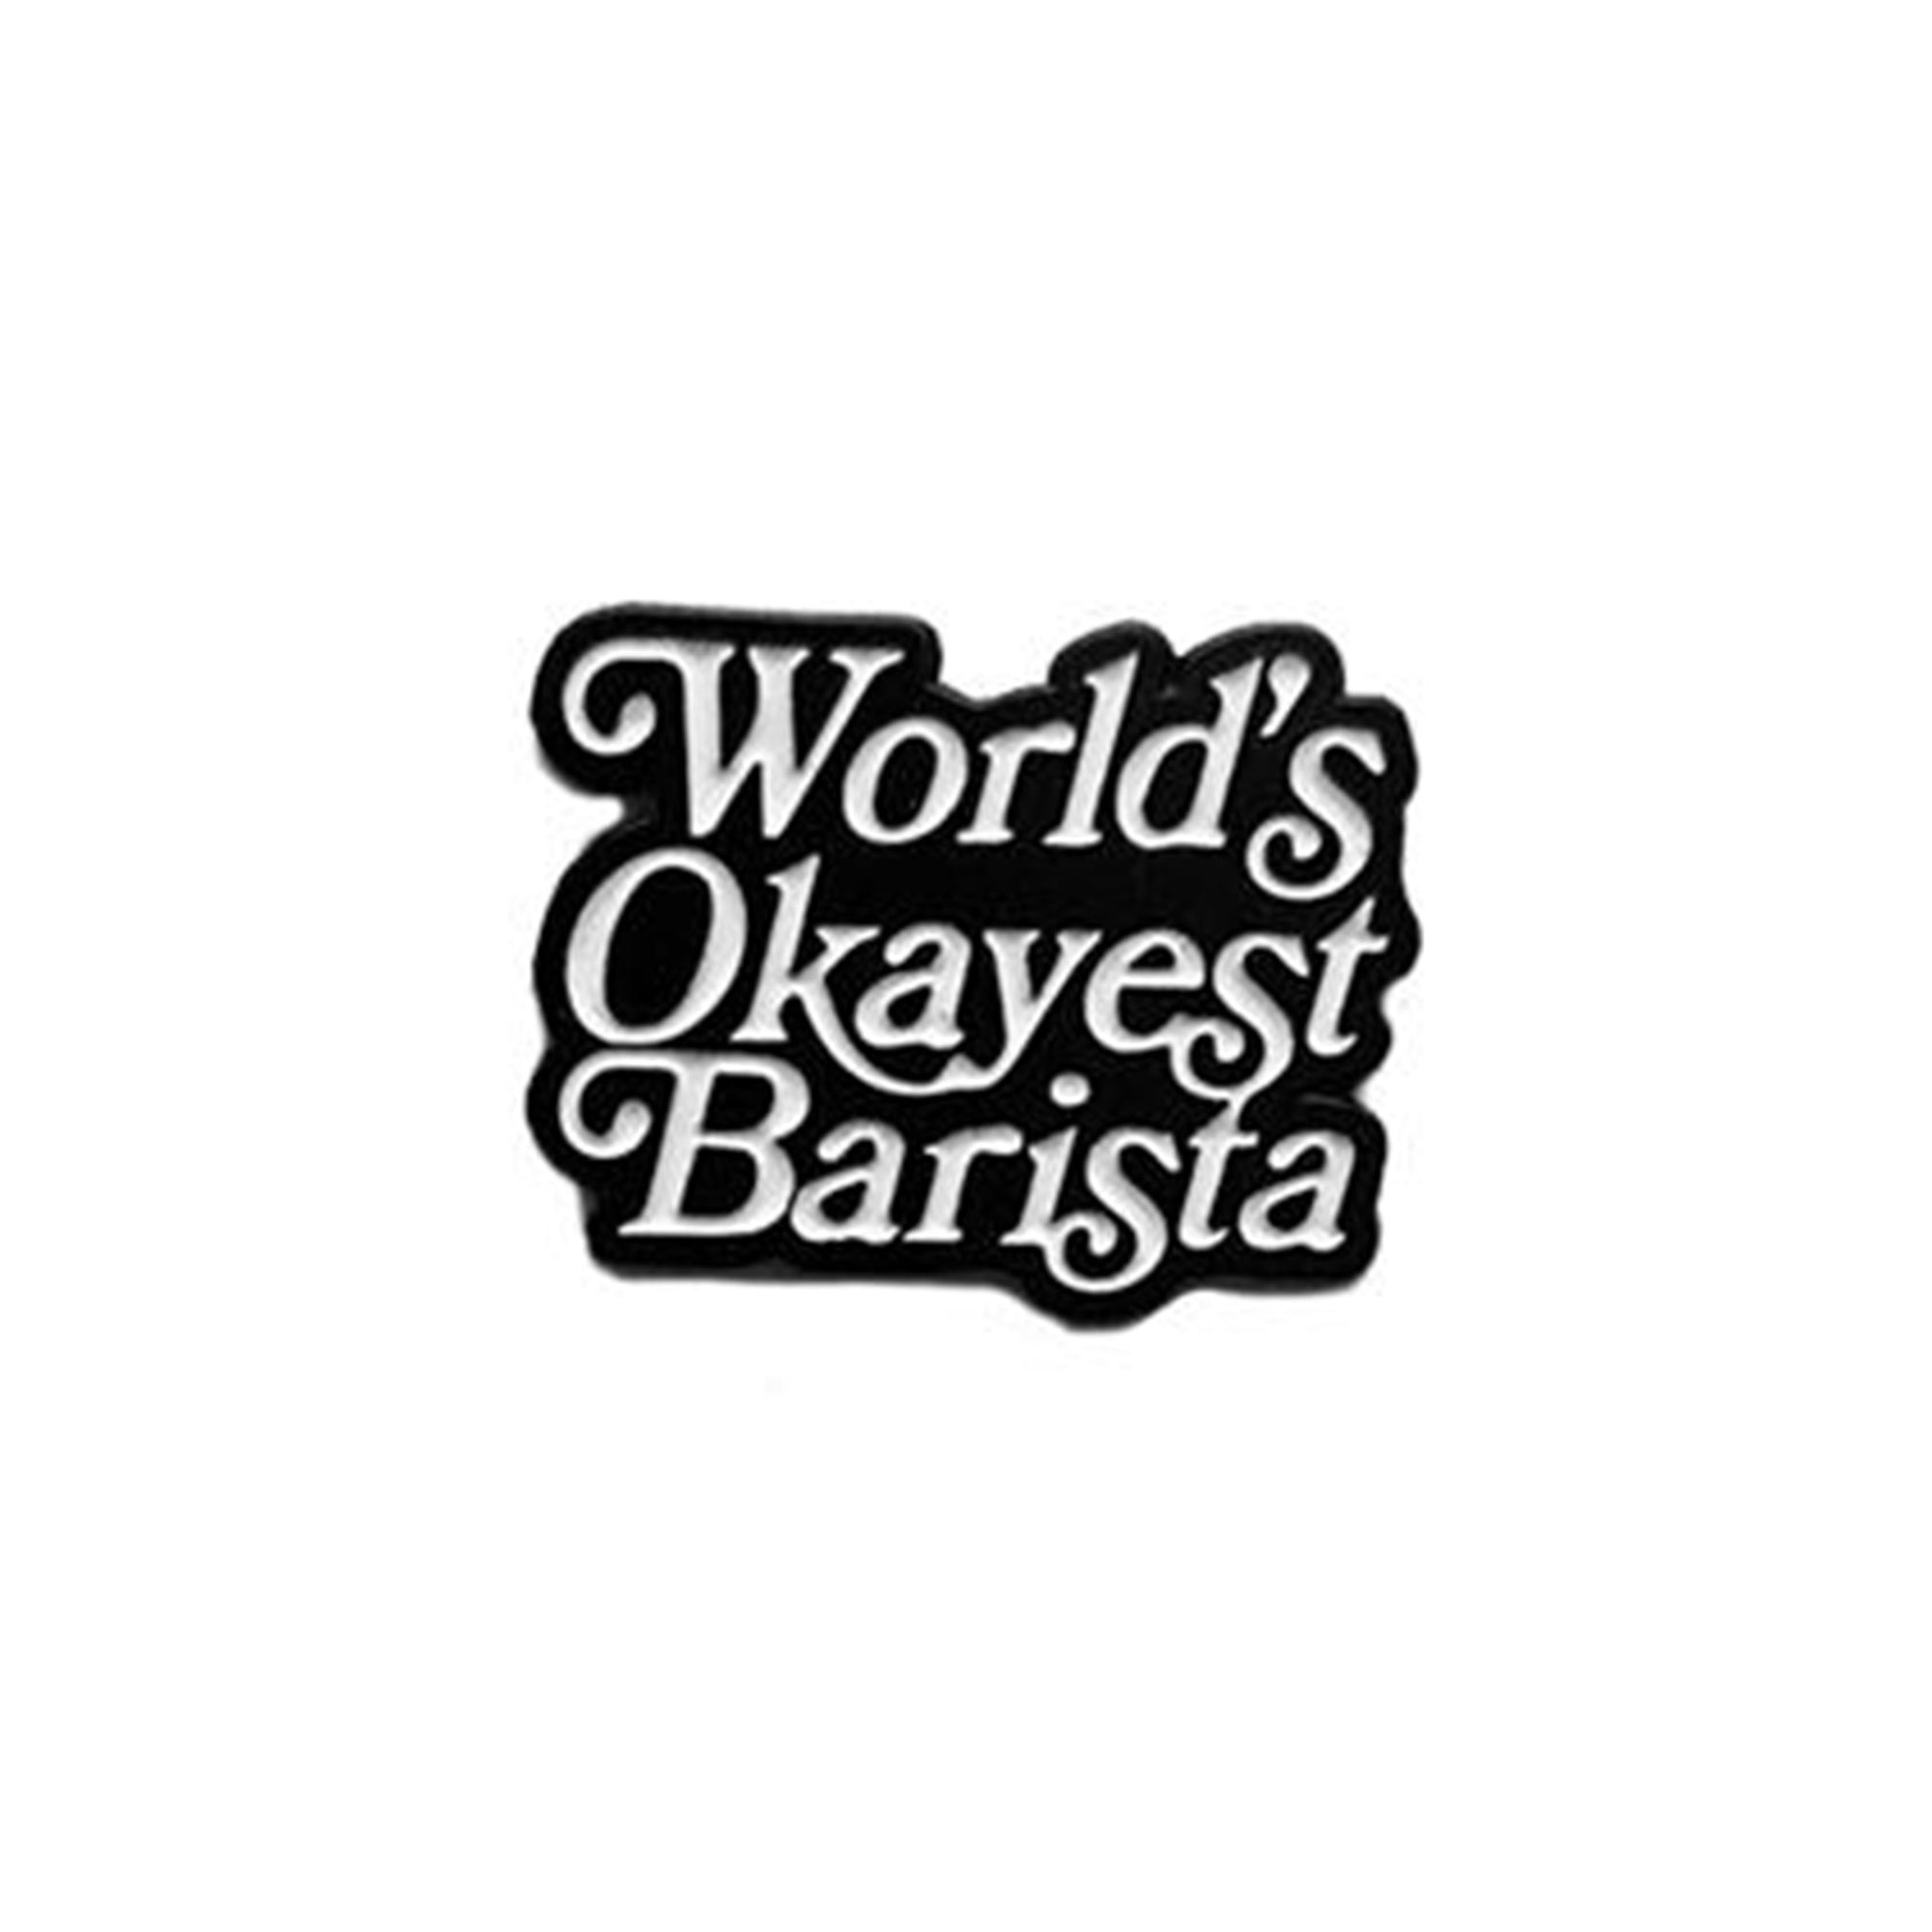 Okayest Barista Pin - Dept of Brewology - Espresso Gear